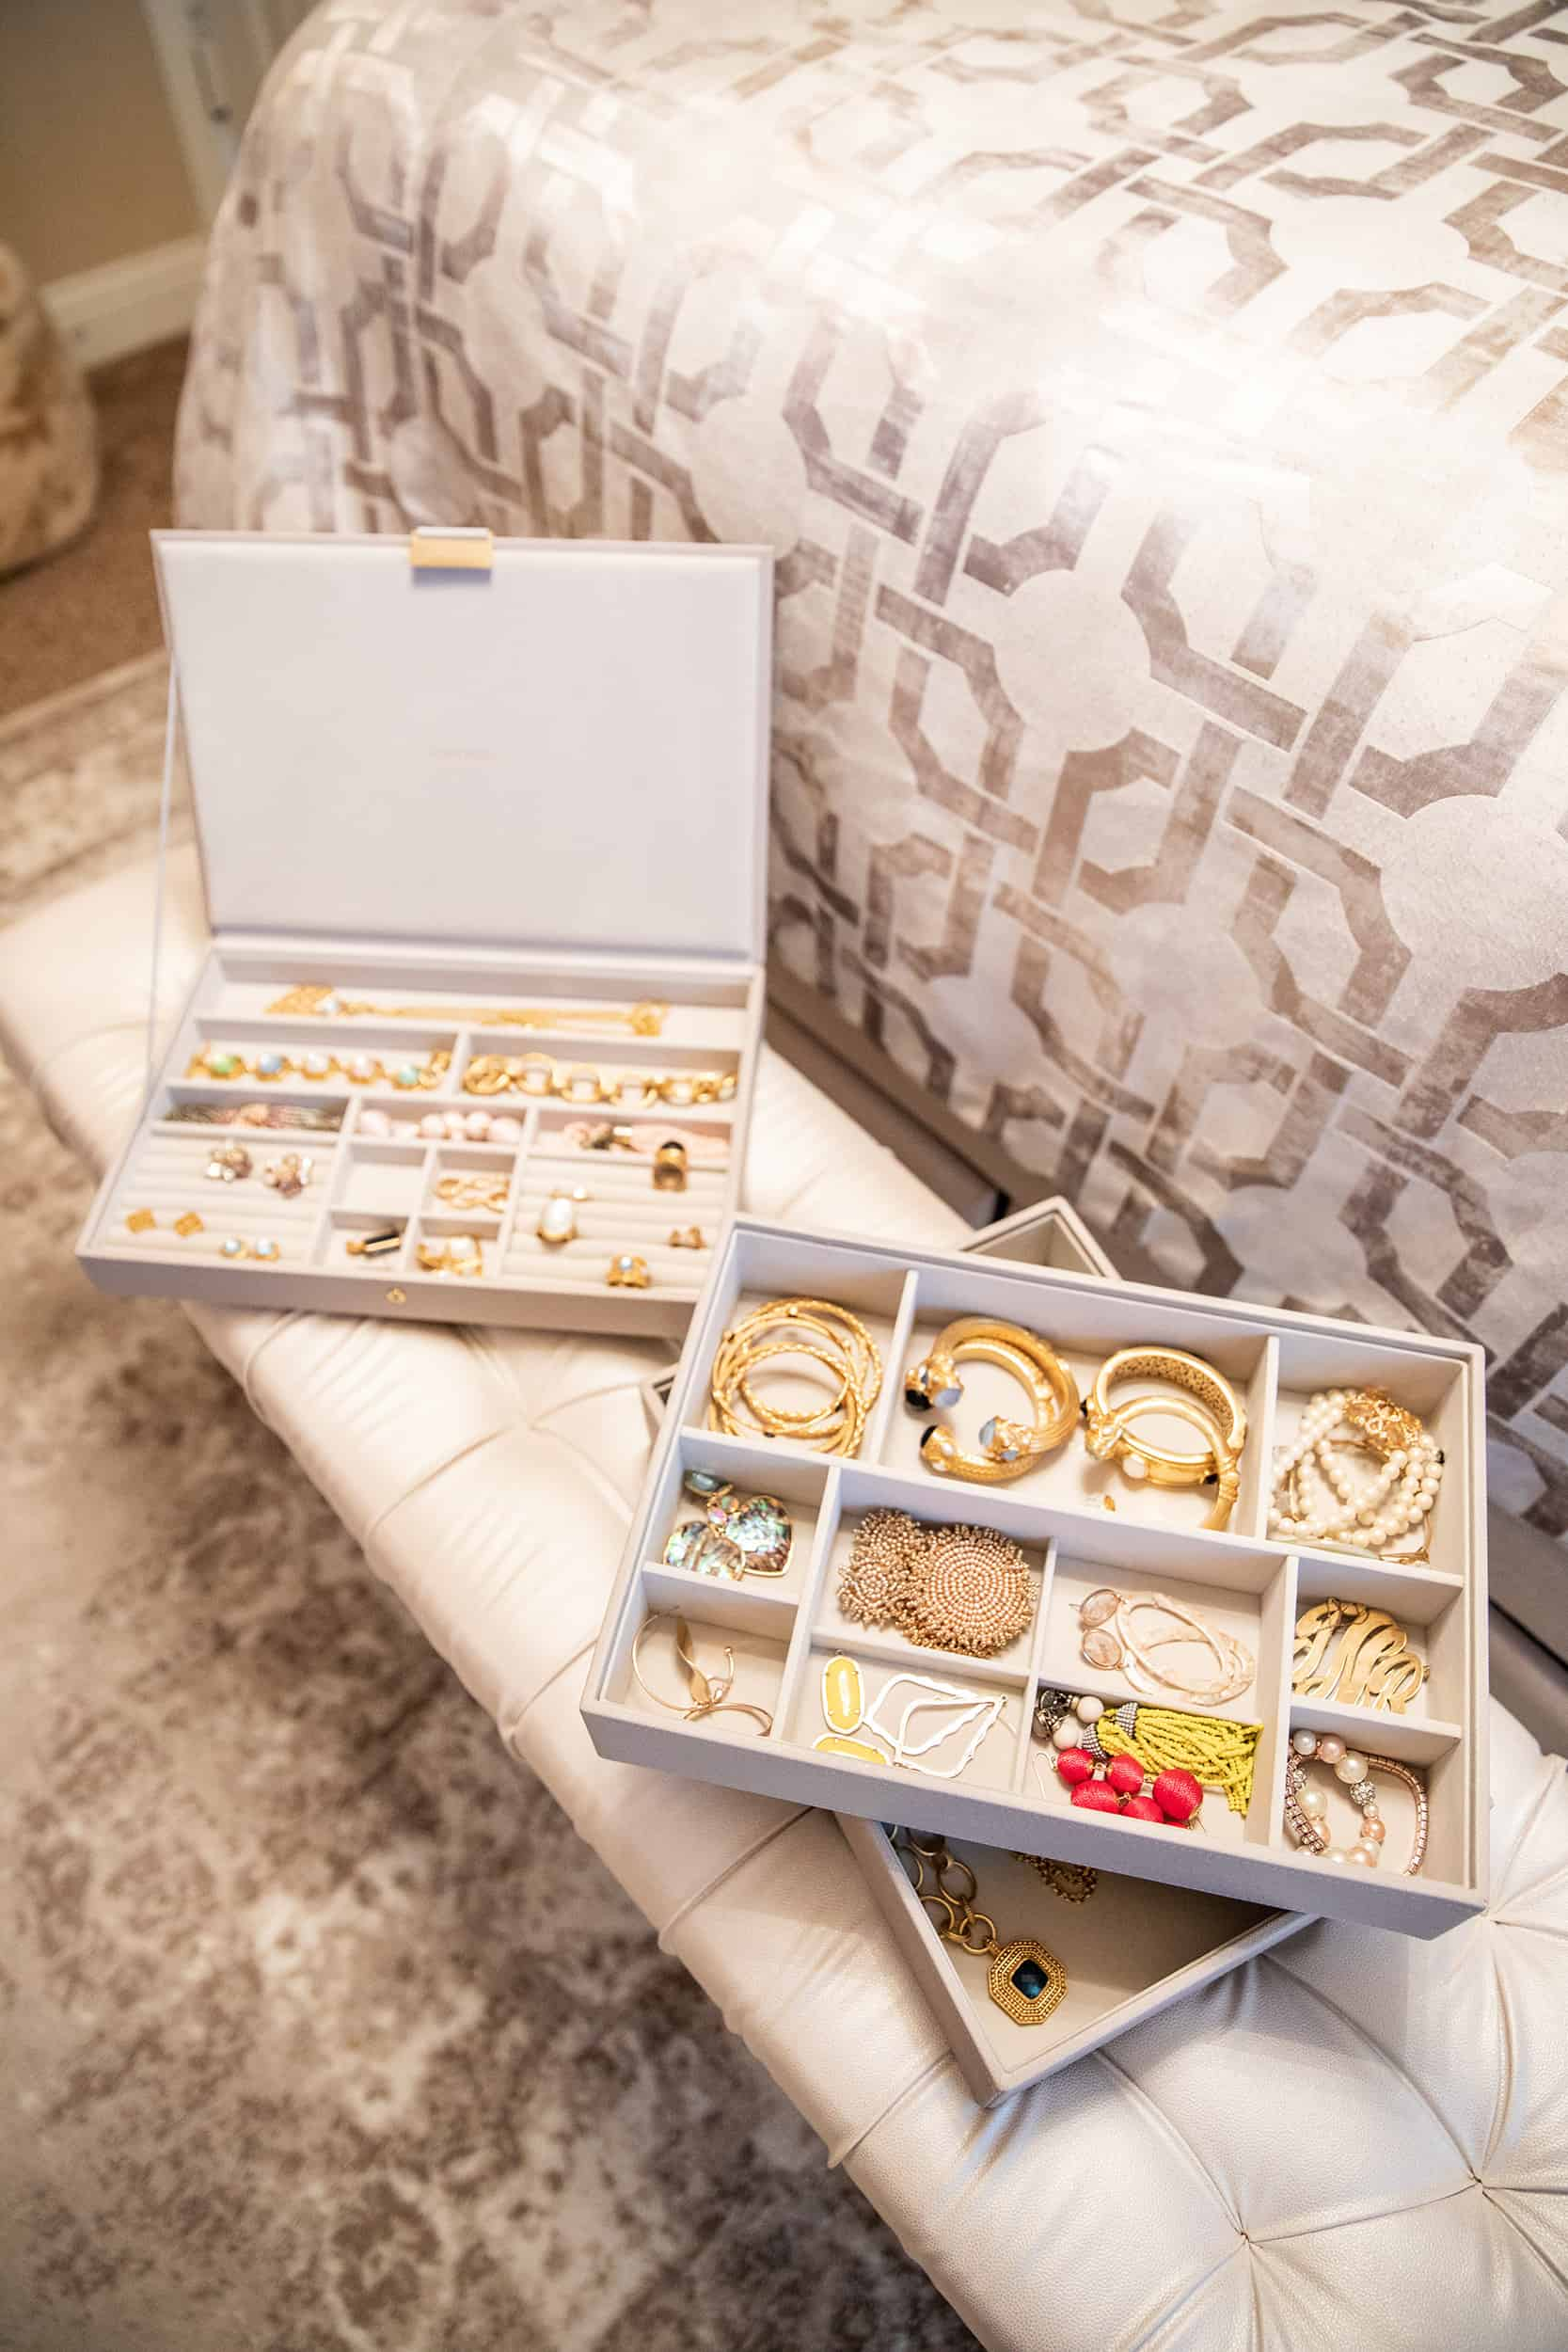 Top Home Organization Projects of 2019 by popular Dallas life and style blog, Glamorous Versatility: image of jewelry storage bins.